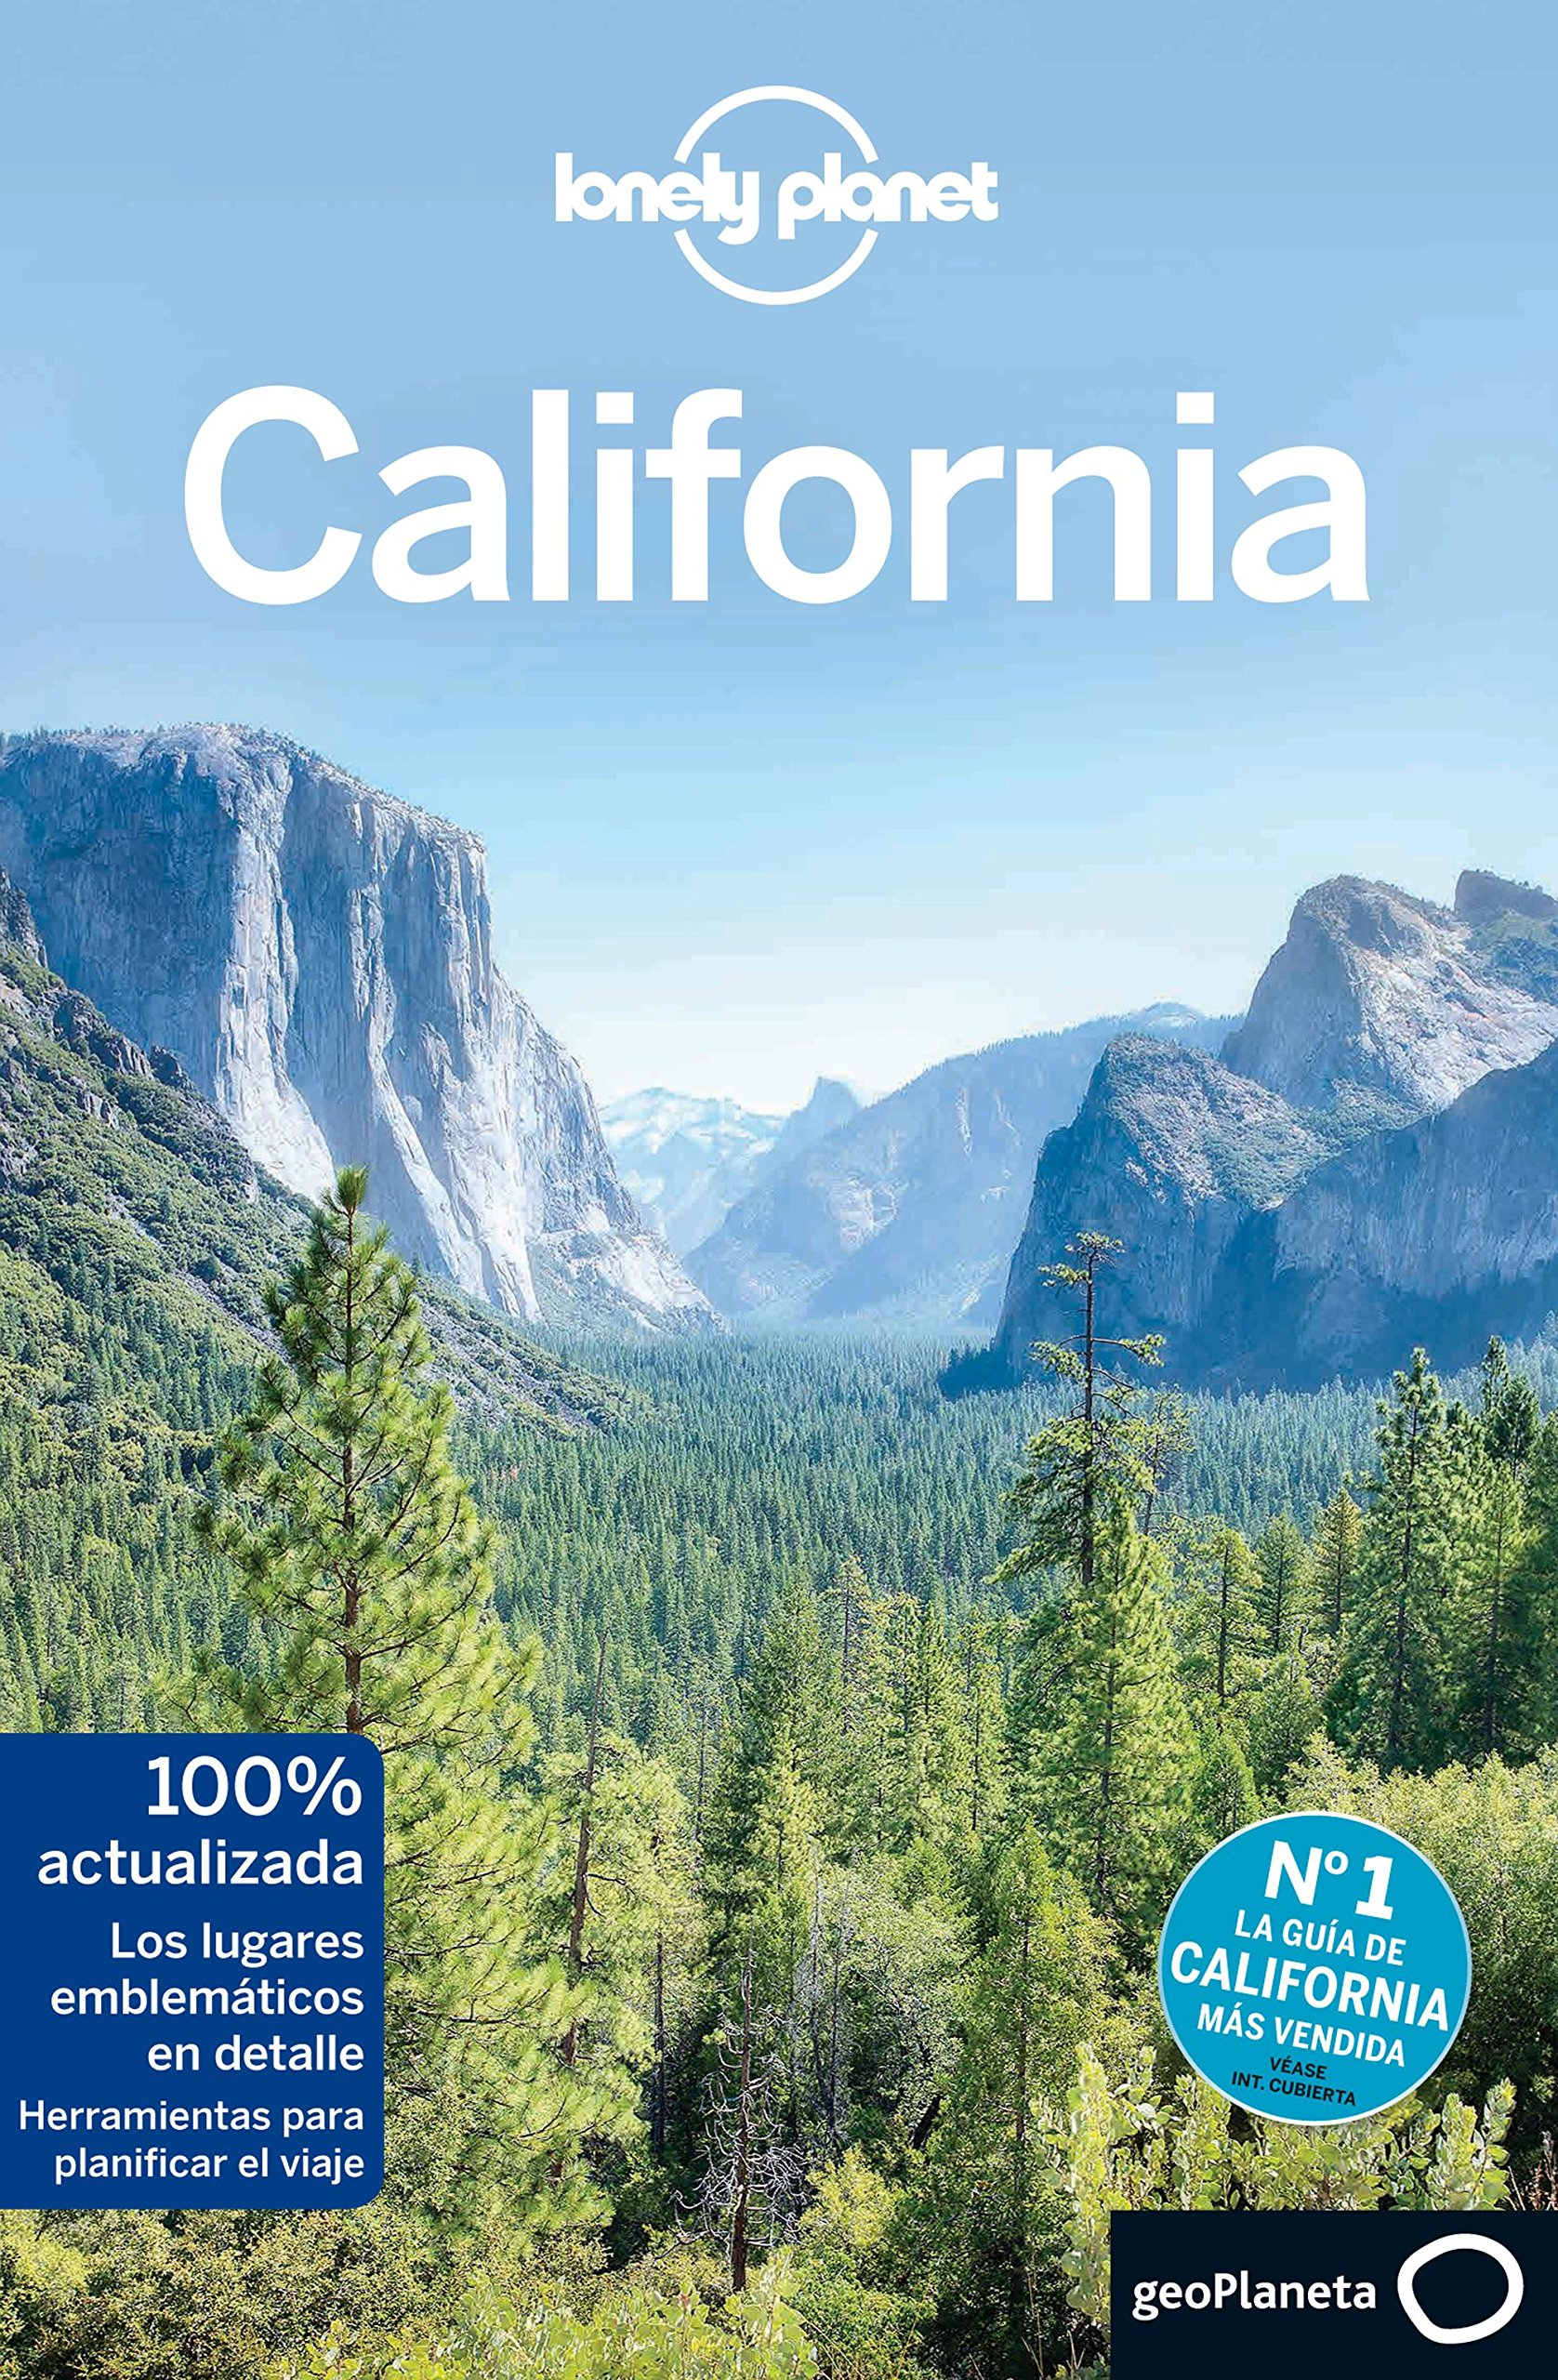 California 3 (Guías de País Lonely Planet): Amazon.es: Benson, Sara, Bing, Alison, Vlahides, John A., Brash, Celeste, Bender, Andrew, Ho, Tienlon, Skolnick, Adam, Kohn, Beth, Álvarez González, Delia, Cruz Santaella, Esther, García